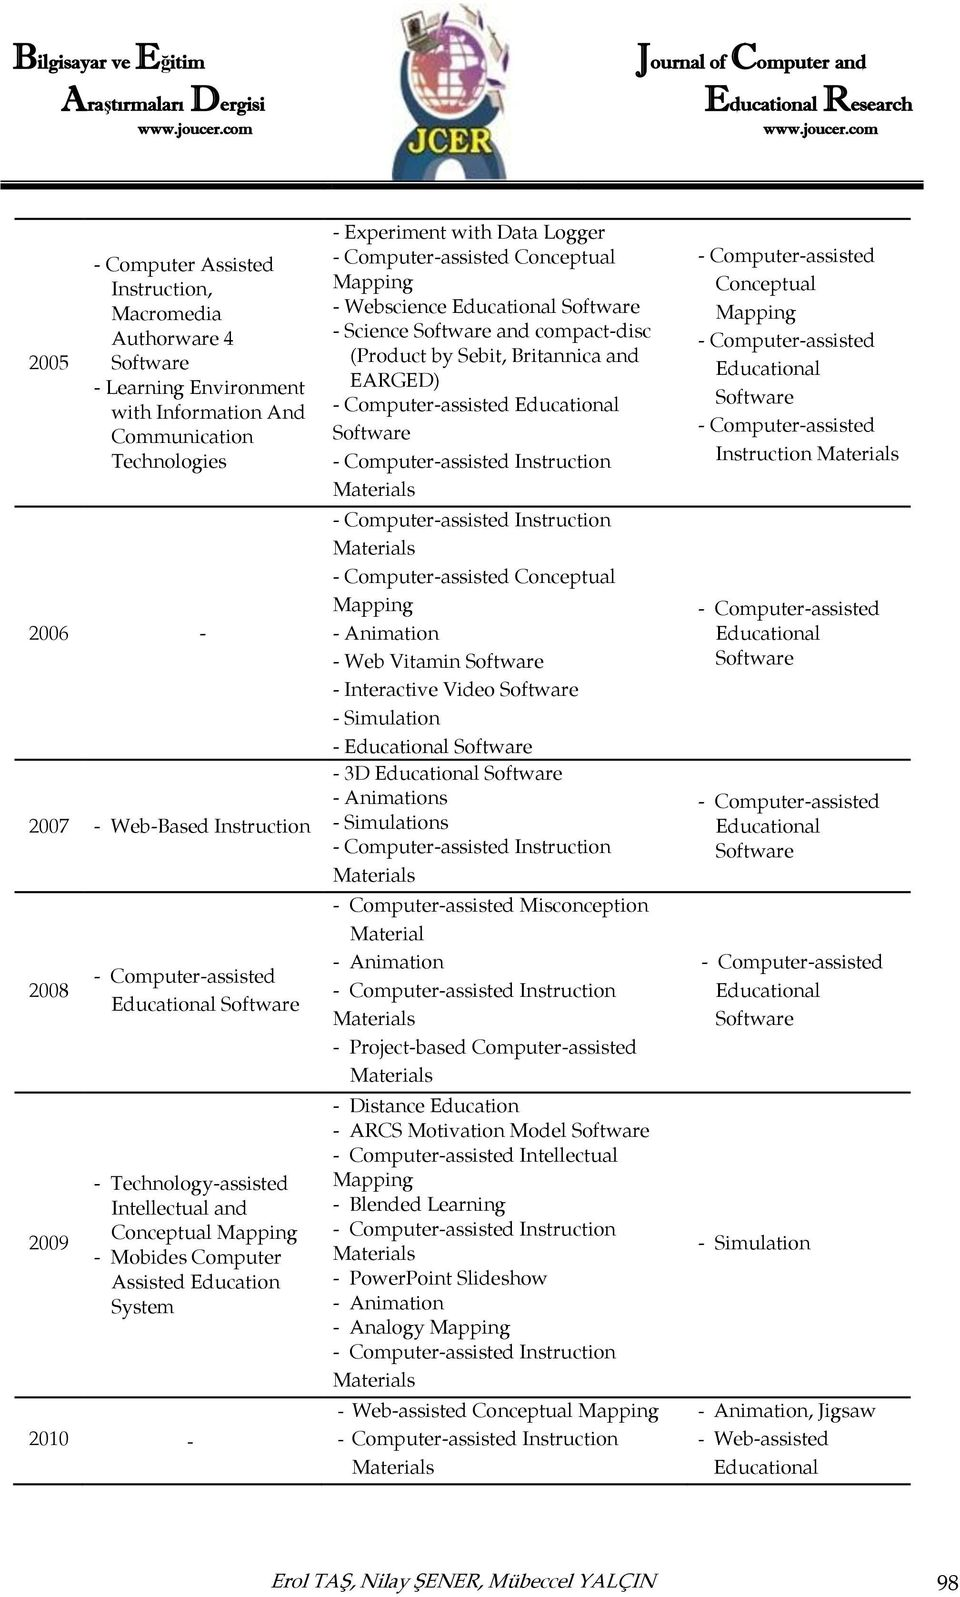 Conceptual Mapping - Webscience Educational Software - Science Software and compact-disc (Product by Sebit, Britannica and EARGED) - Computer-assisted Educational Software - Computer-assisted